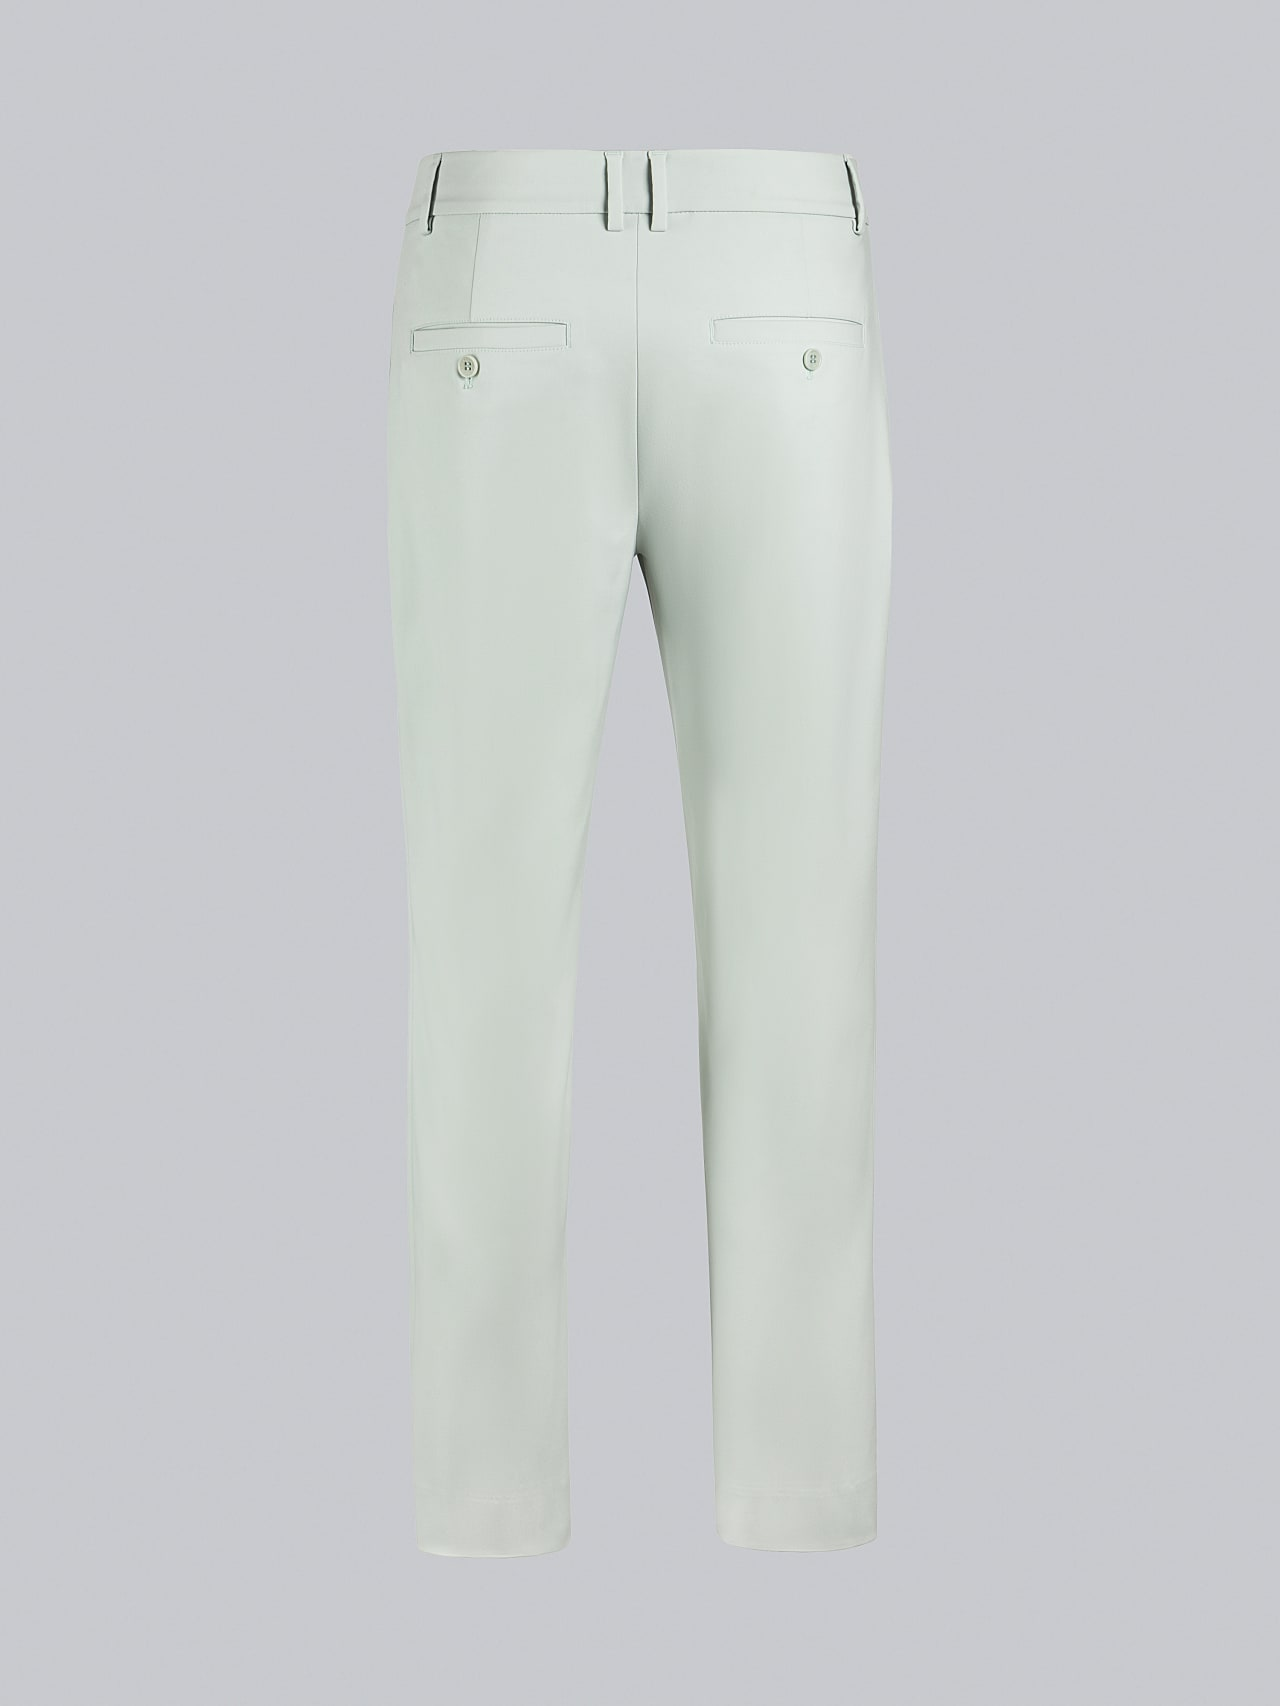 PELAN V1.Y5.02 Tapered Pants with Pleats Pale Blue  Left Alpha Tauri